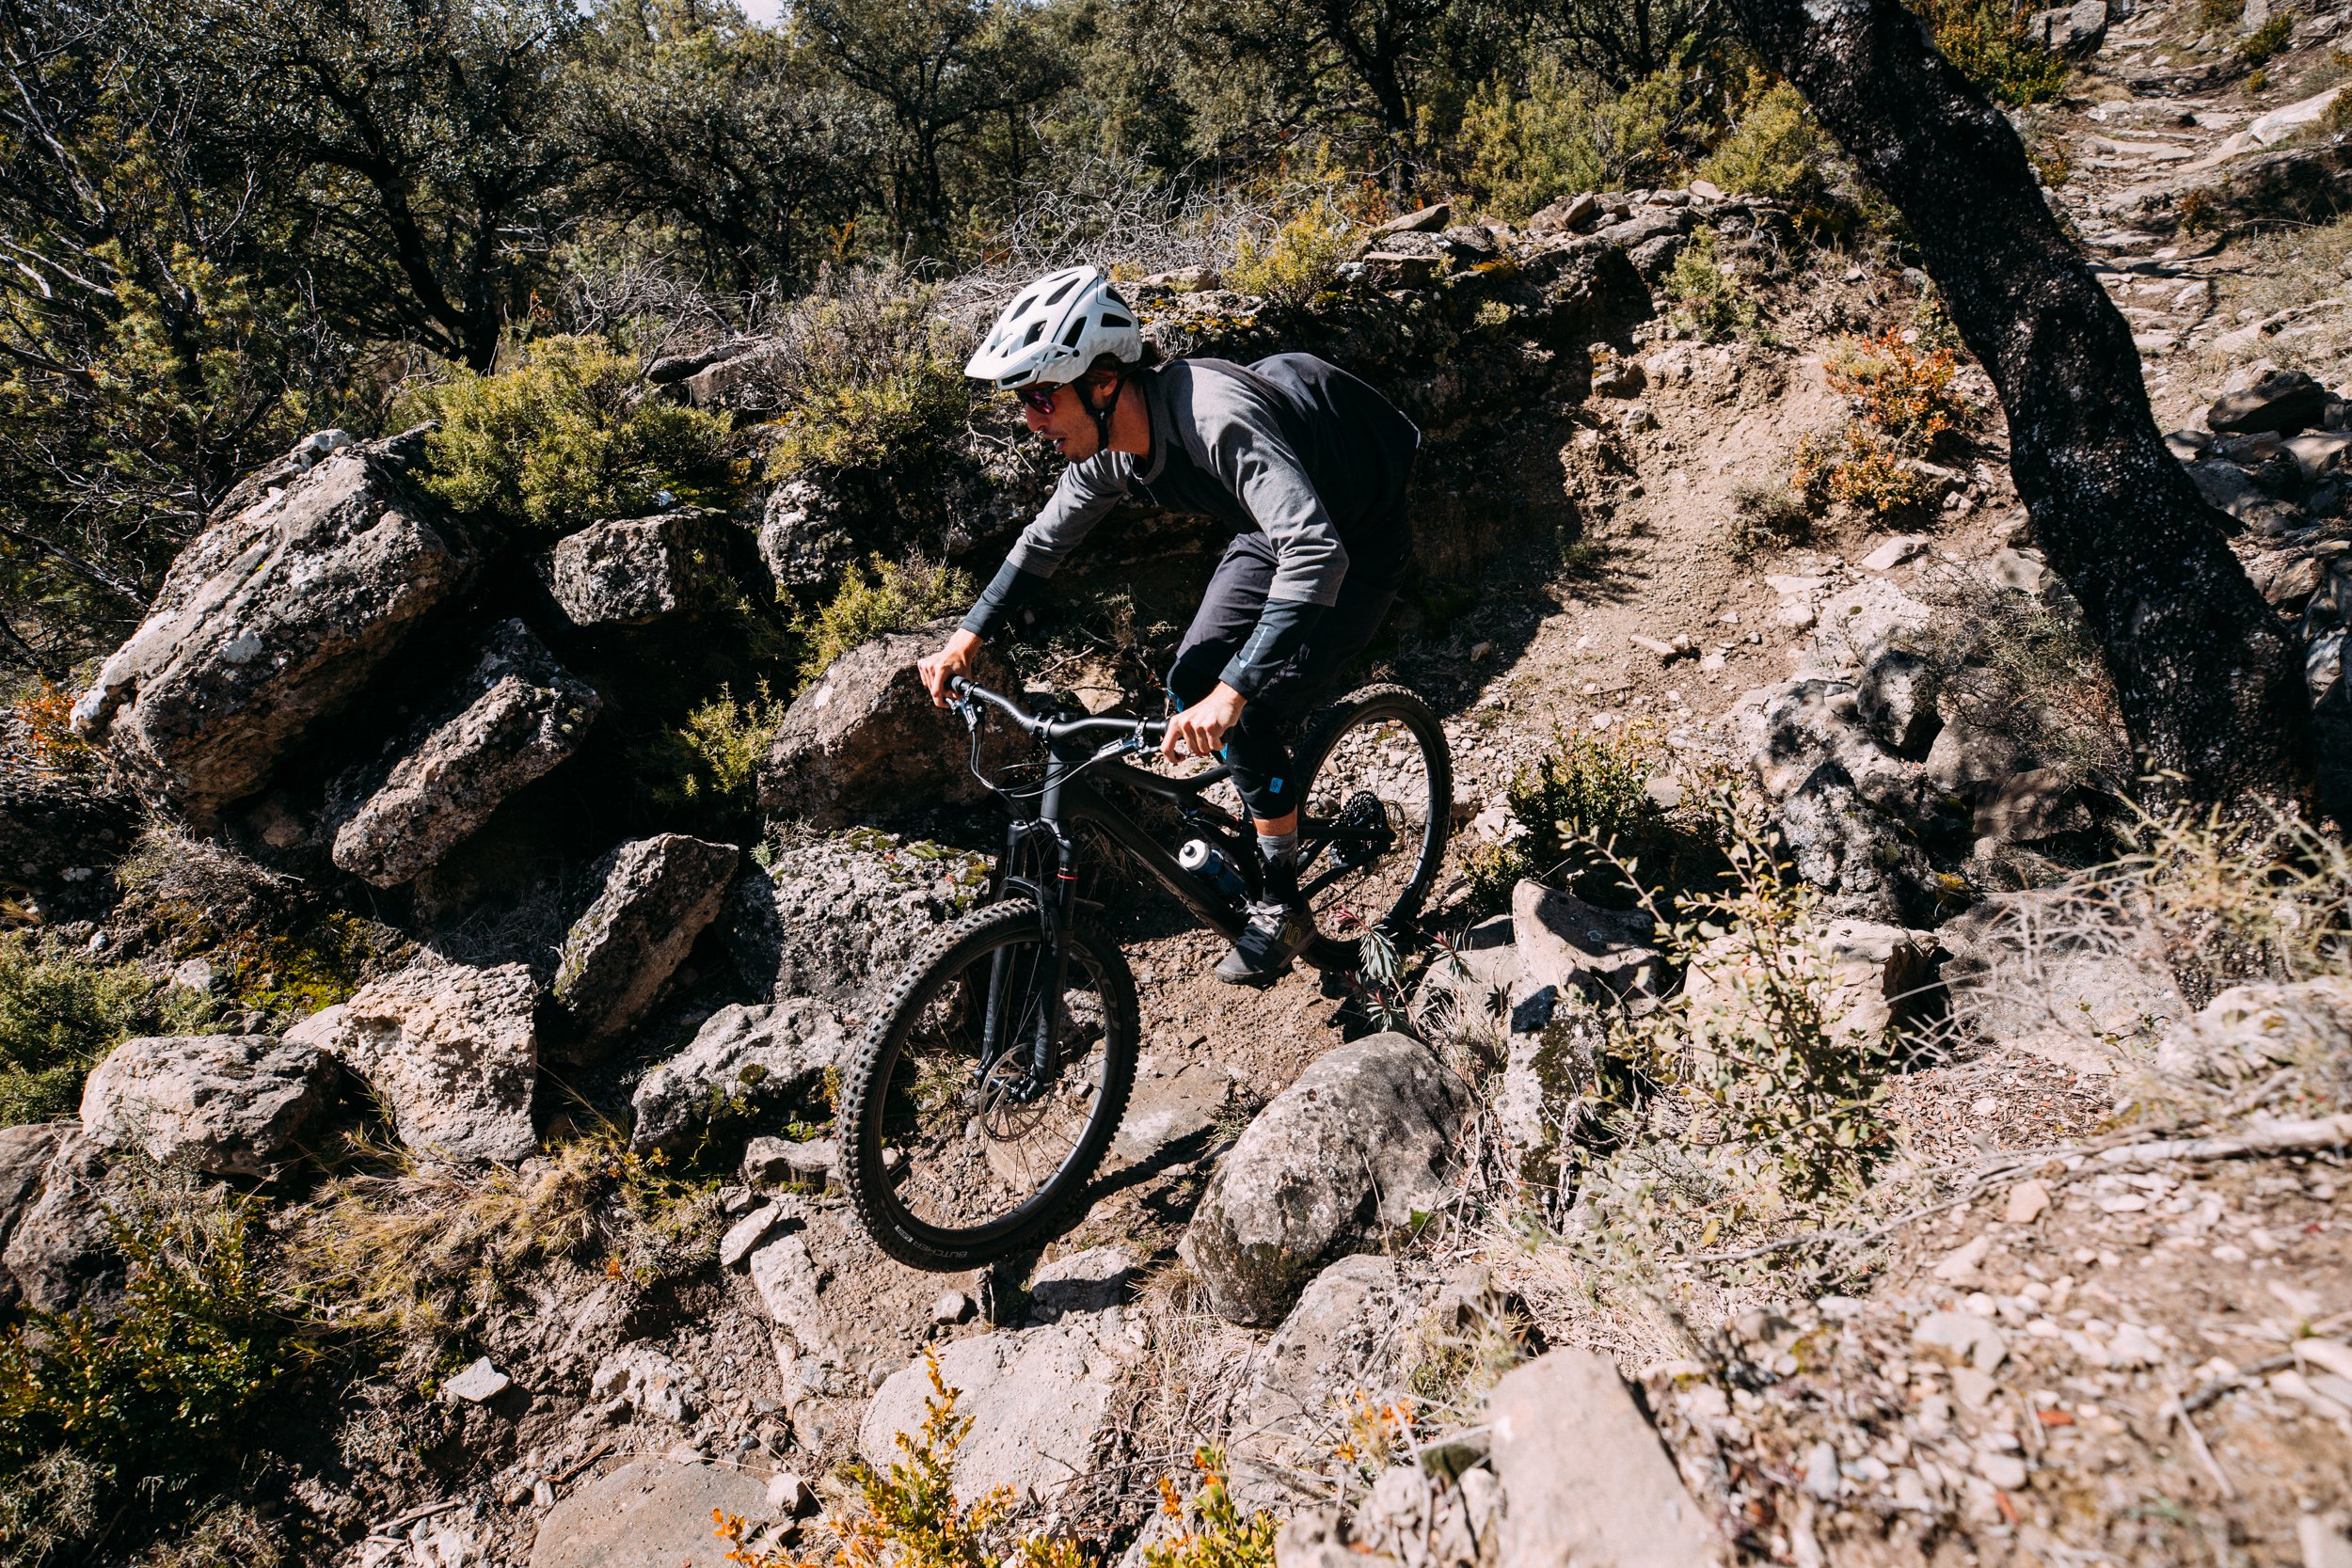 AJ Barlas on the new 2018 Specialized Stumpjumper ST 29 in Spain